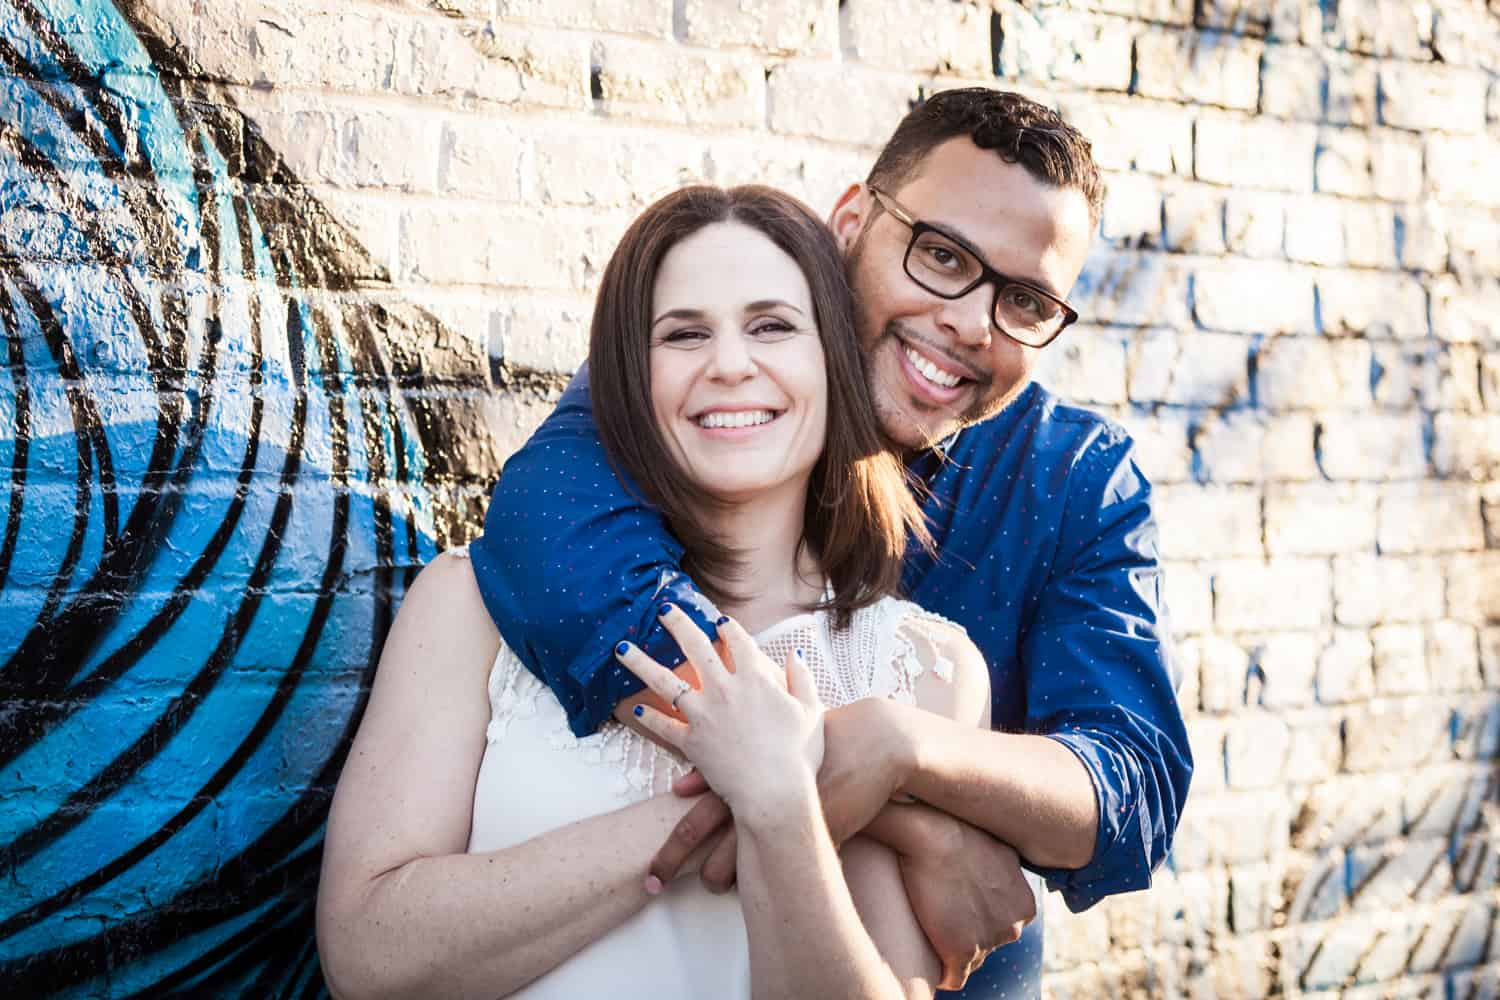 Man hugging woman from behind in front of brick wall